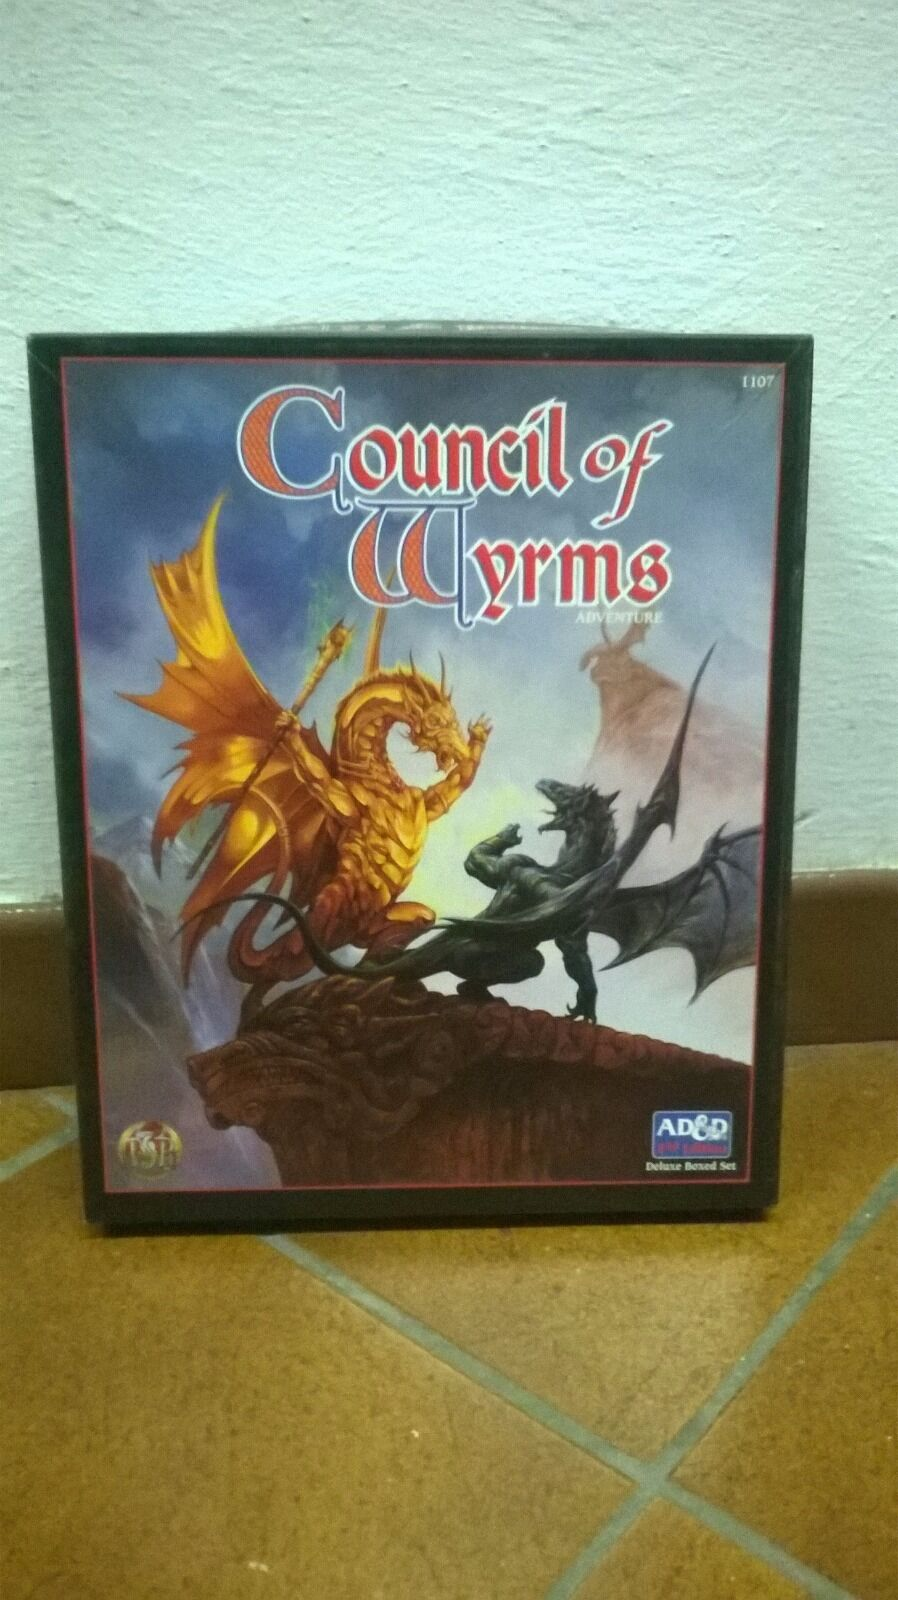 Advanced Dungeons & Dragons: Council of Wyrms Adventure Boxed Set,  1107, 1997